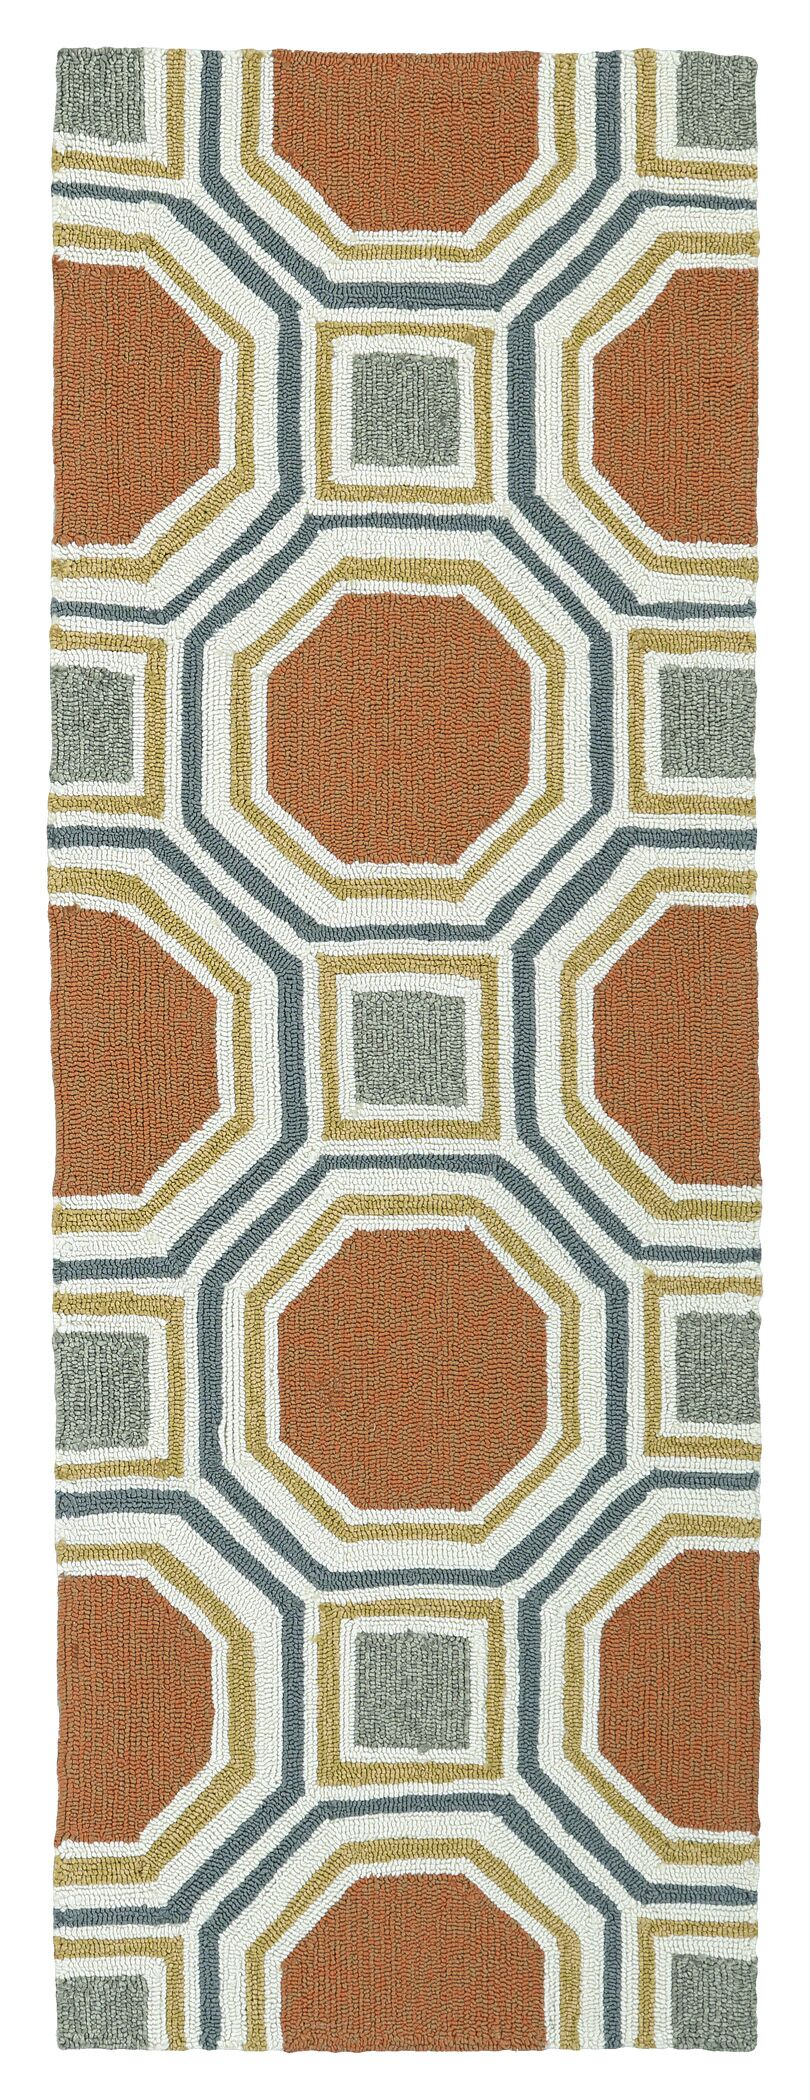 Doylestown Pumpkin Indoor/Outdoor Area Rug Rug Size: Rectangle 9' x 12'